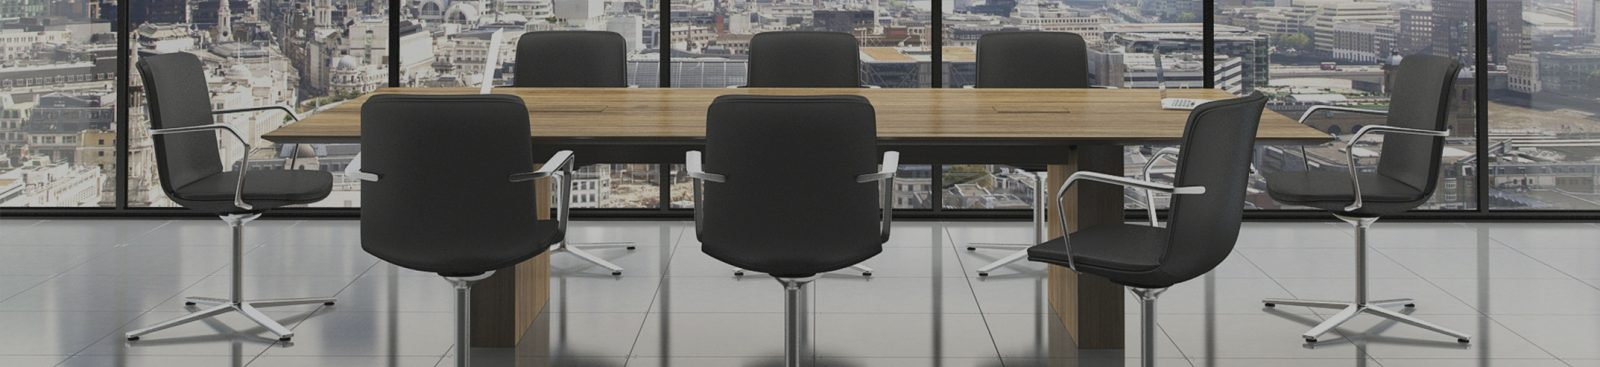 Boardrooms & Executive Spaces image